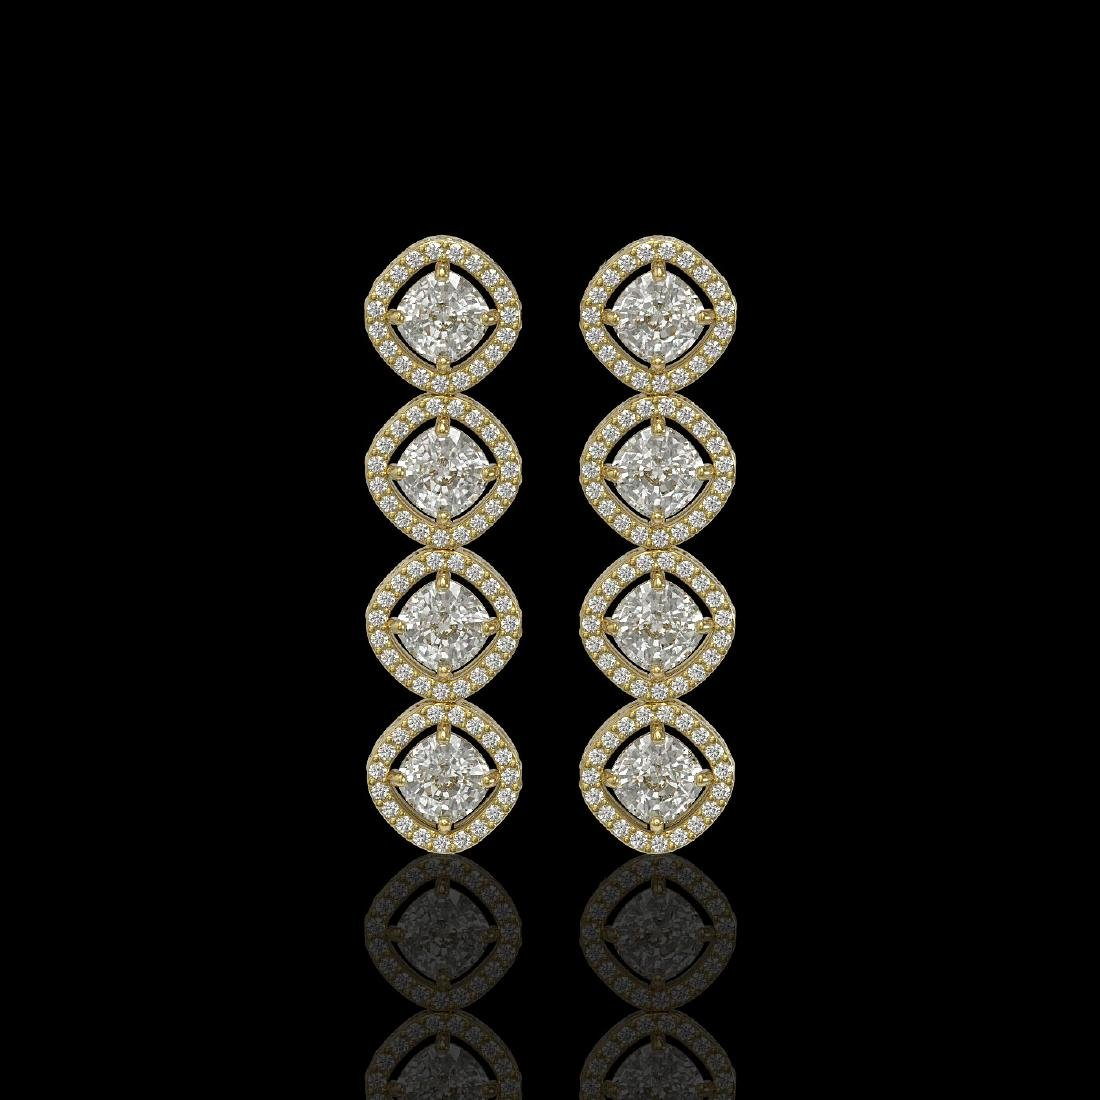 5.28 CTW Cushion Cut Diamond Designer Earrings 18K